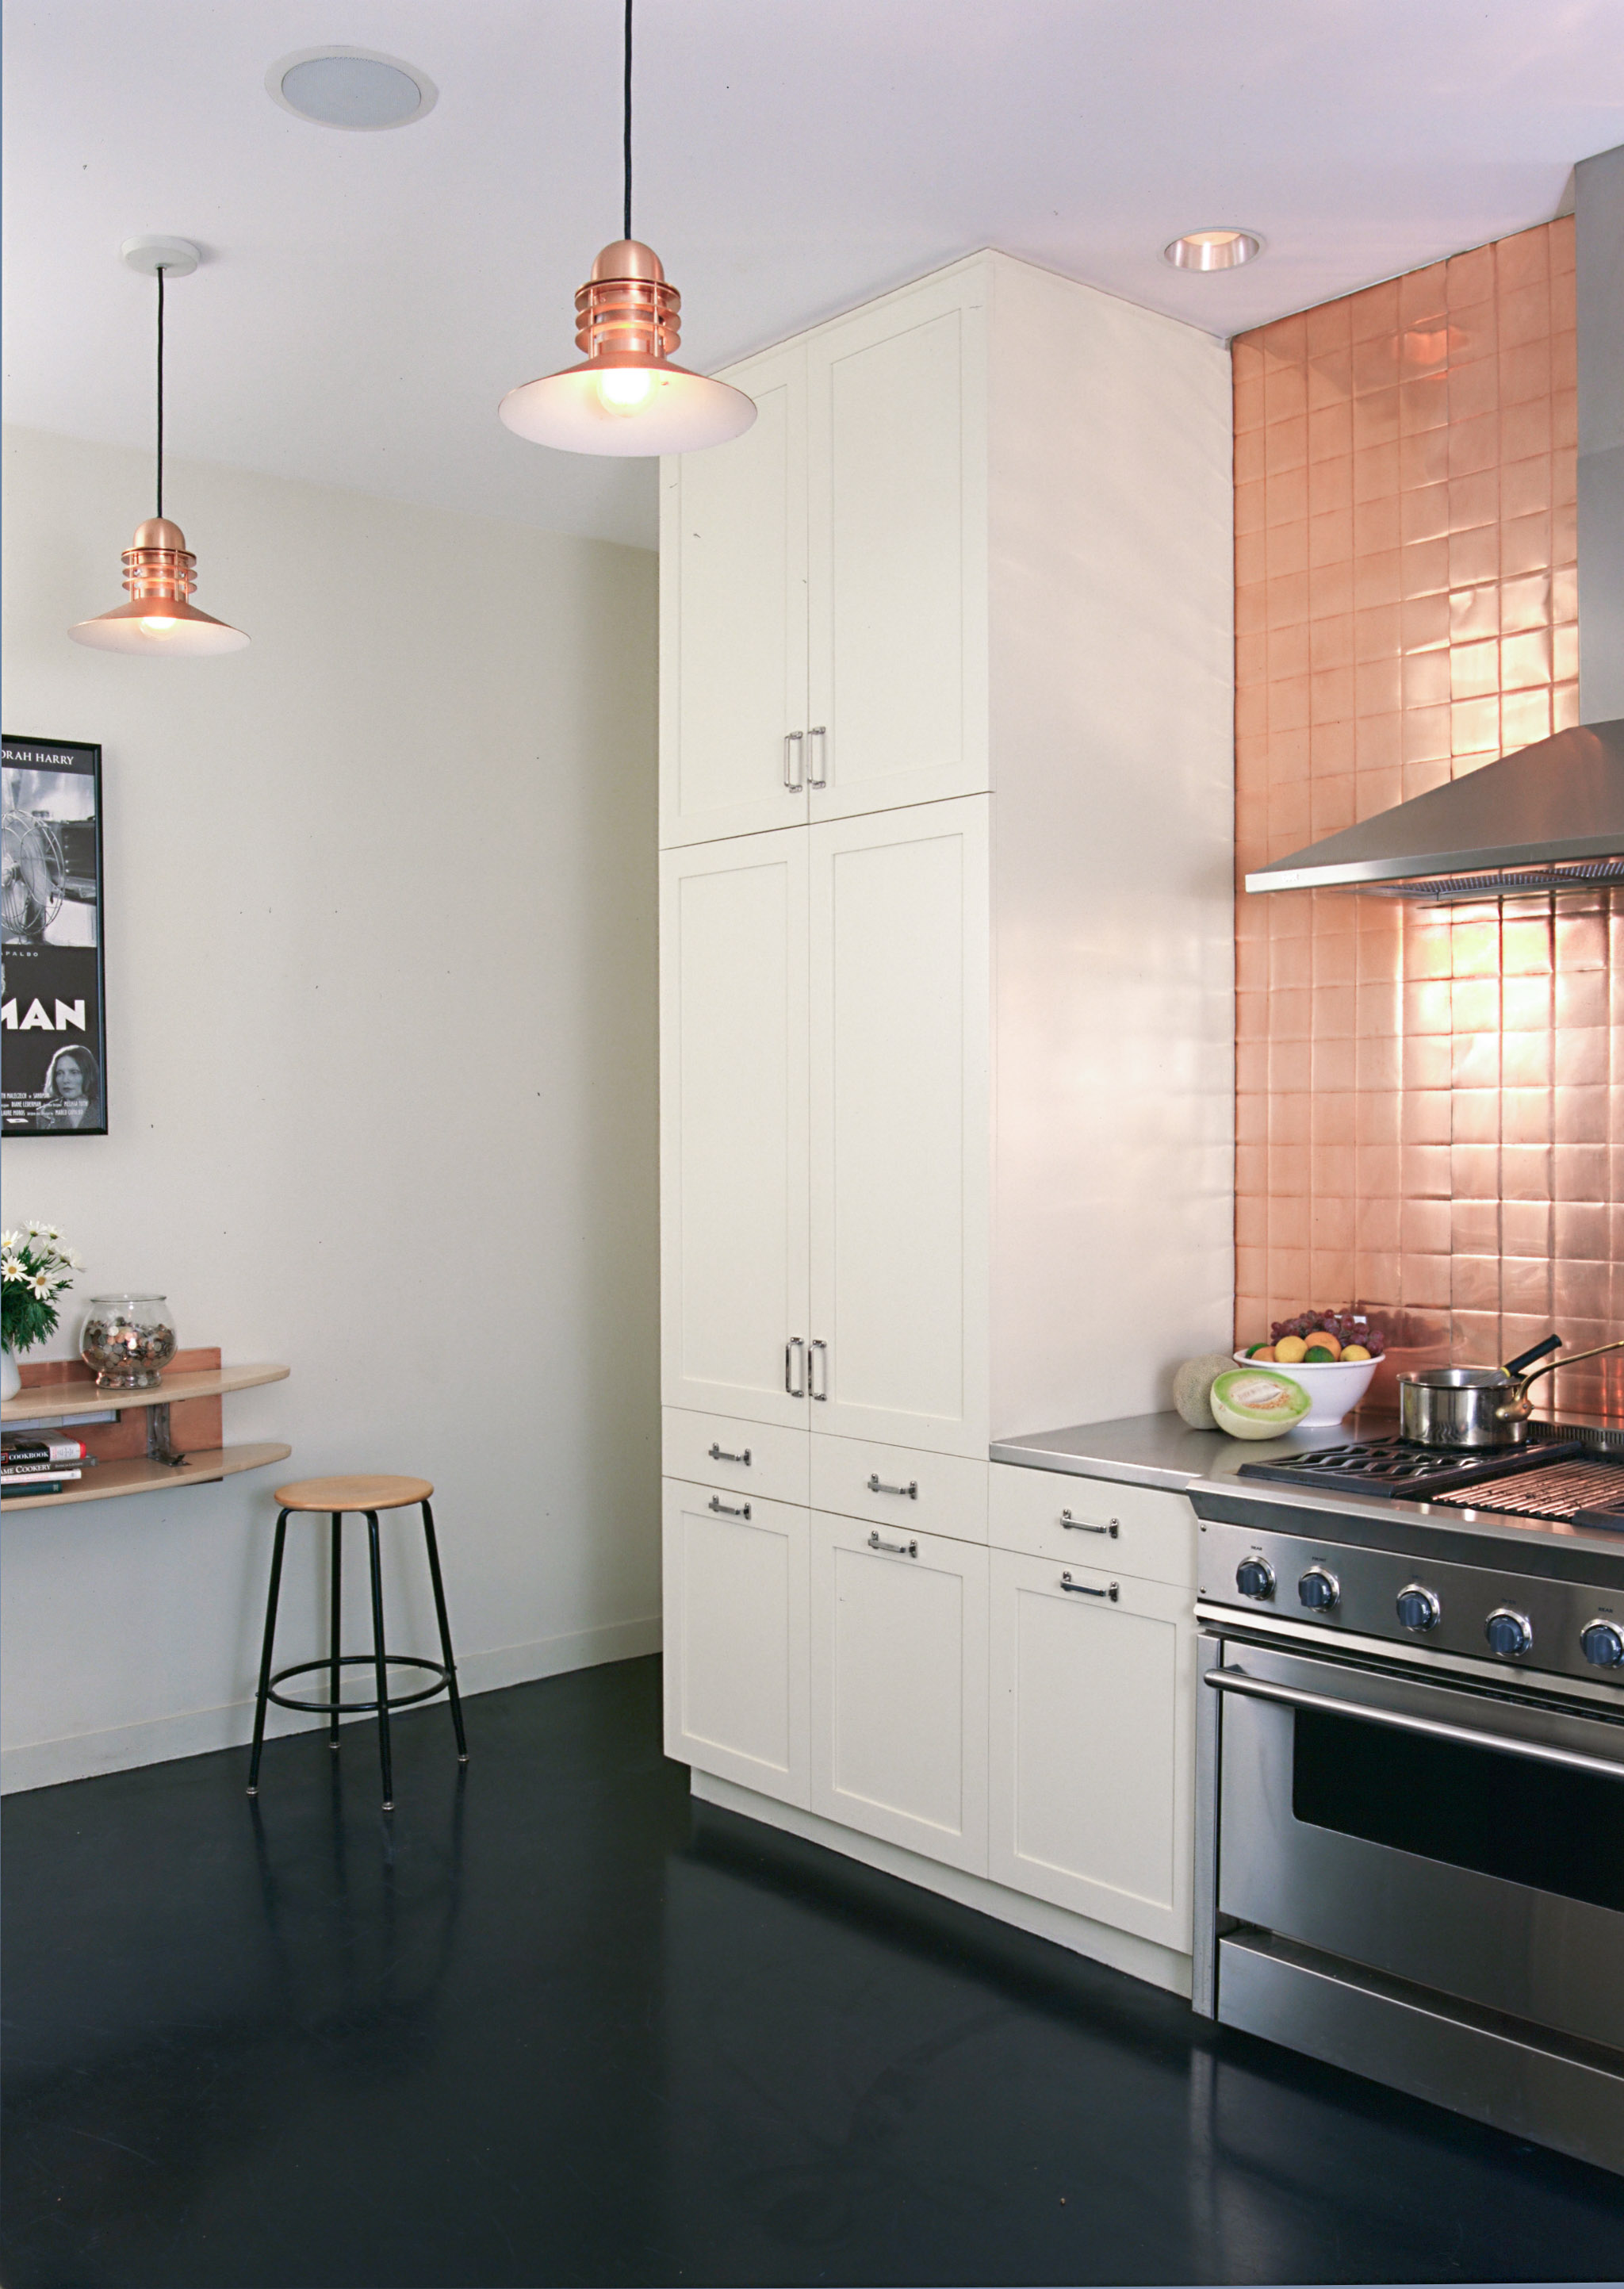 M563 Kitchen - 4BC4CD46EB544F6F_cr.jpg